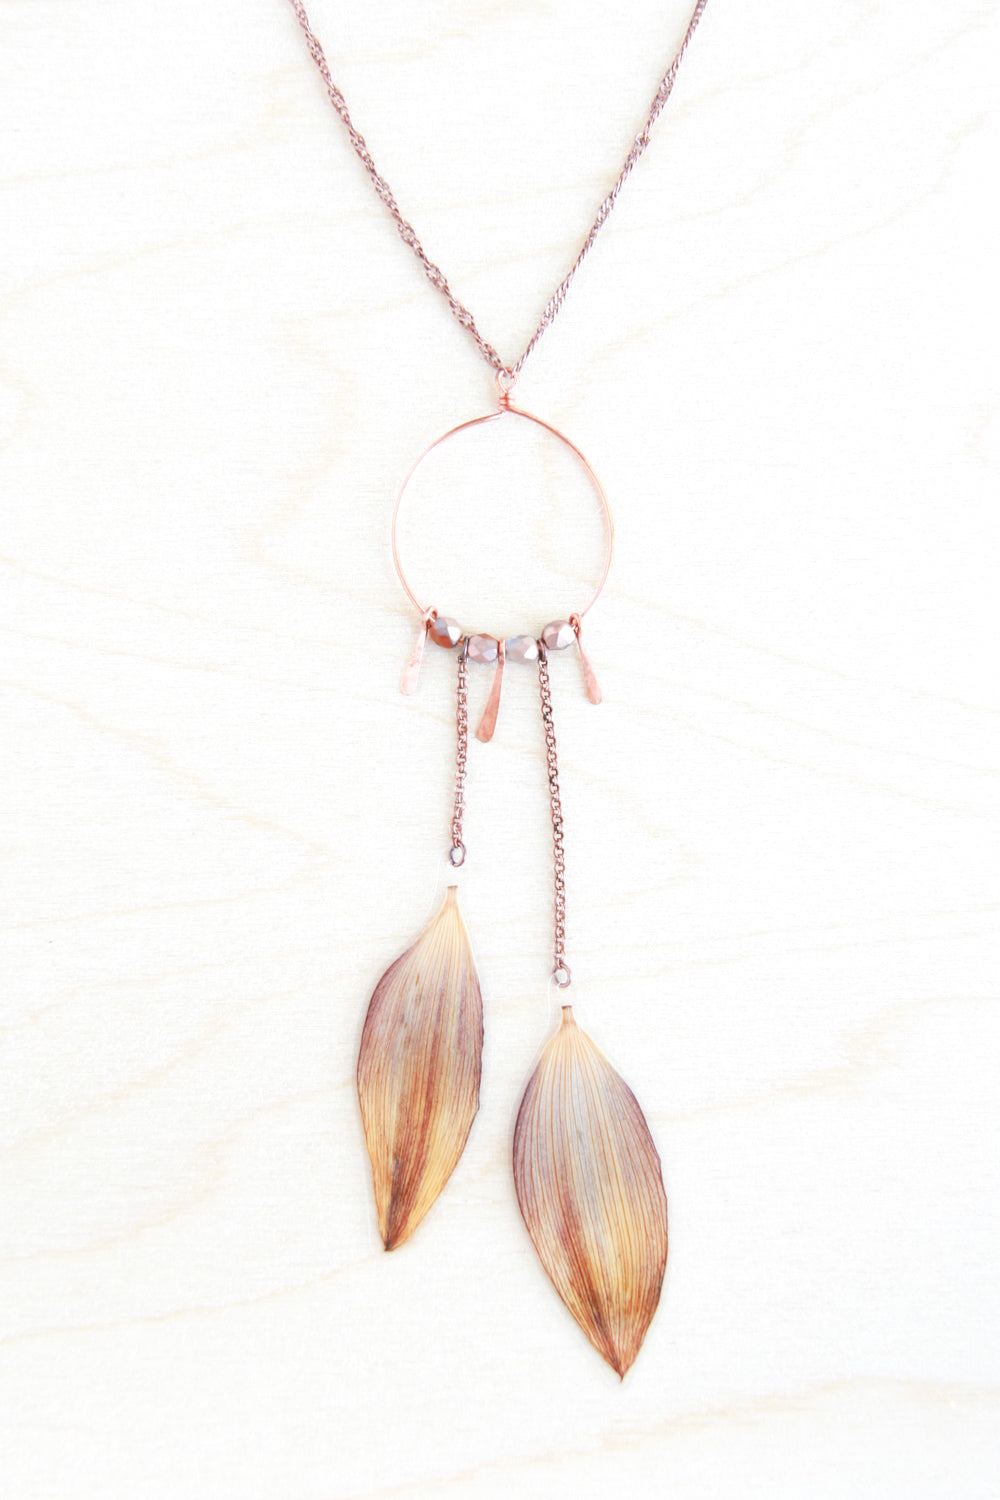 Brown & Yellow Sunflower Pressed Flower Necklace with Copper Hoop, Hammered Sun Rays, and Burnt Umber Glass Beads